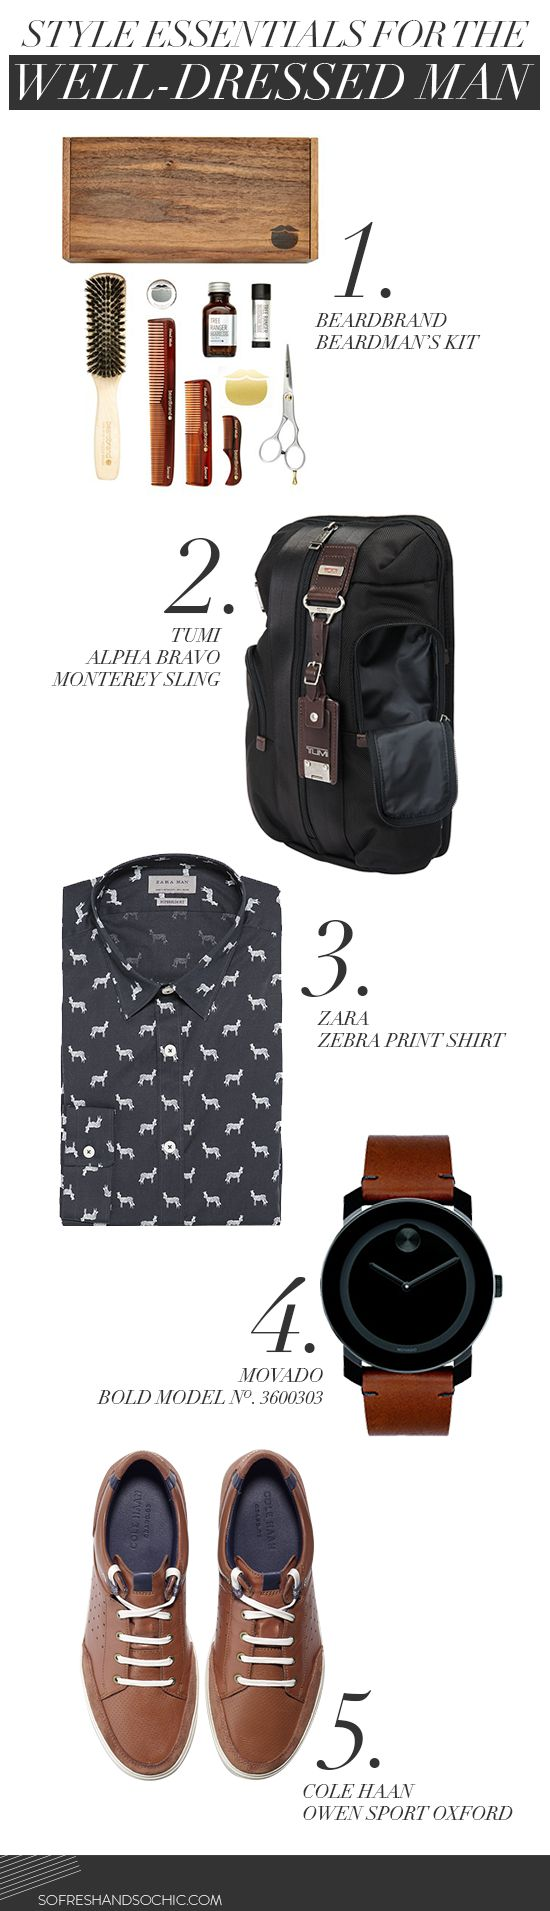 So Fresh & So Chic // Style Essentials for the Well-Dressed Man #sofreshandsochic www.sofreshandsochic.com #mensstyle